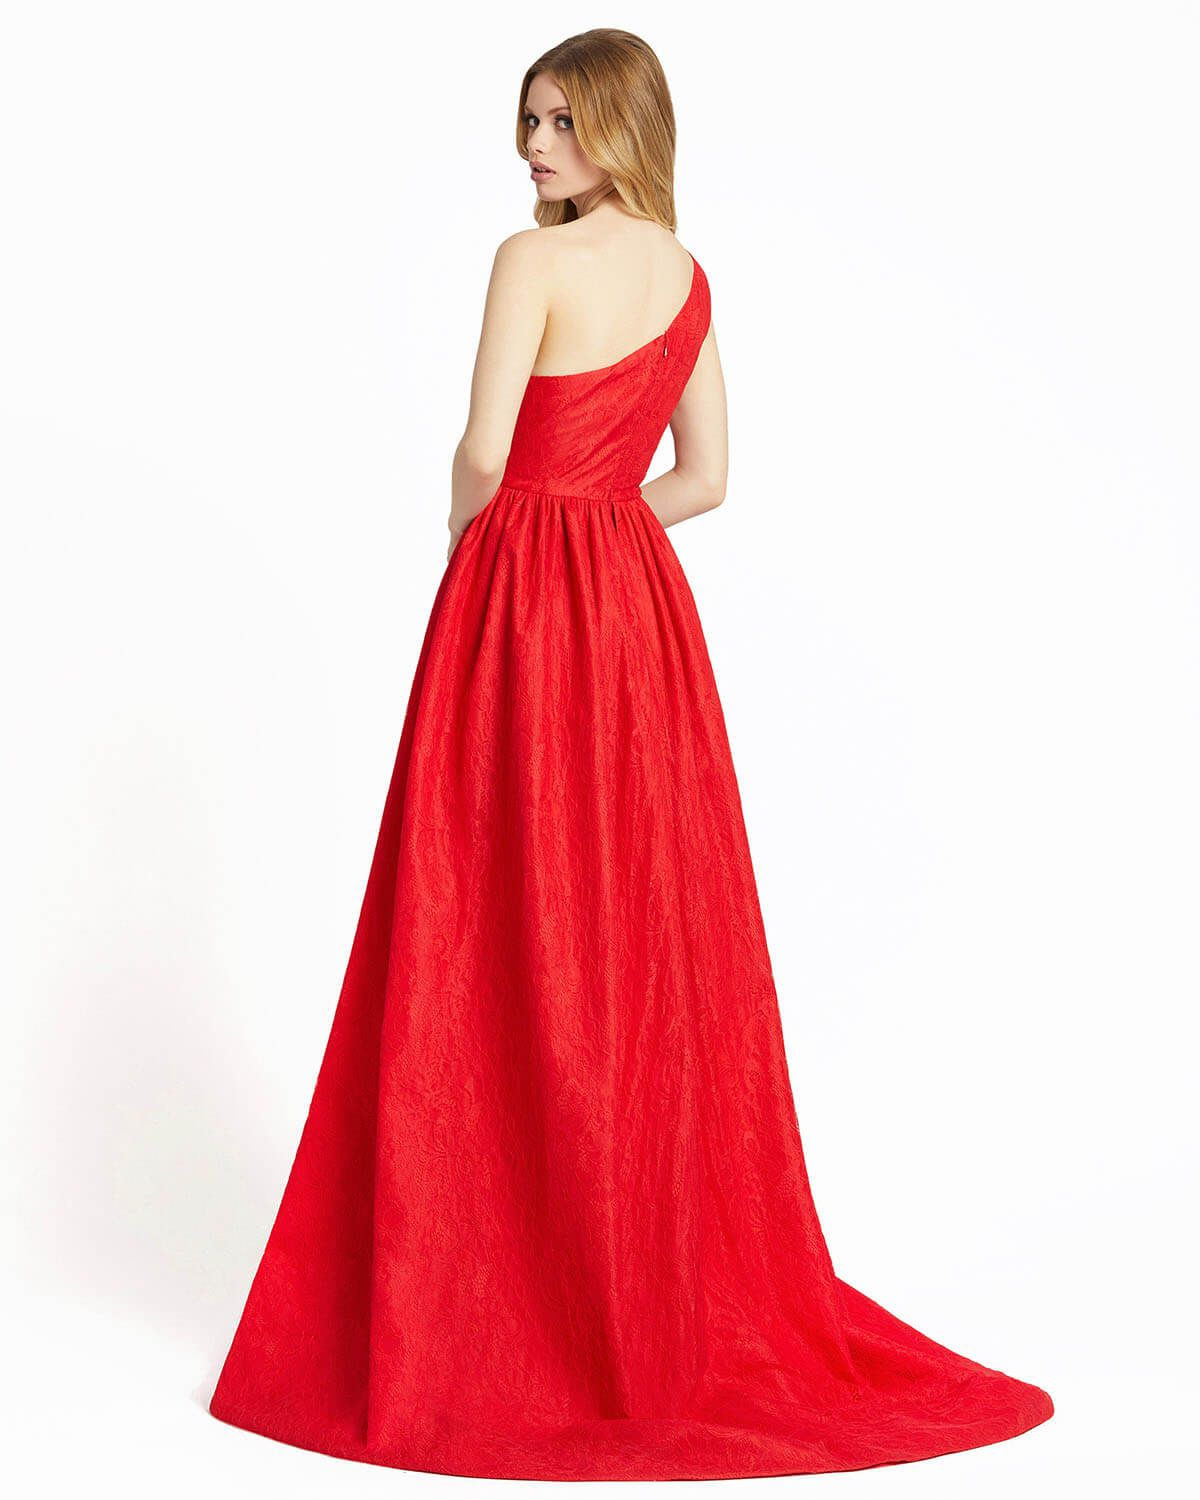 Style 12363 Mac Duggal Red Size 4 One Shoulder Prom Ball gown on Queenly